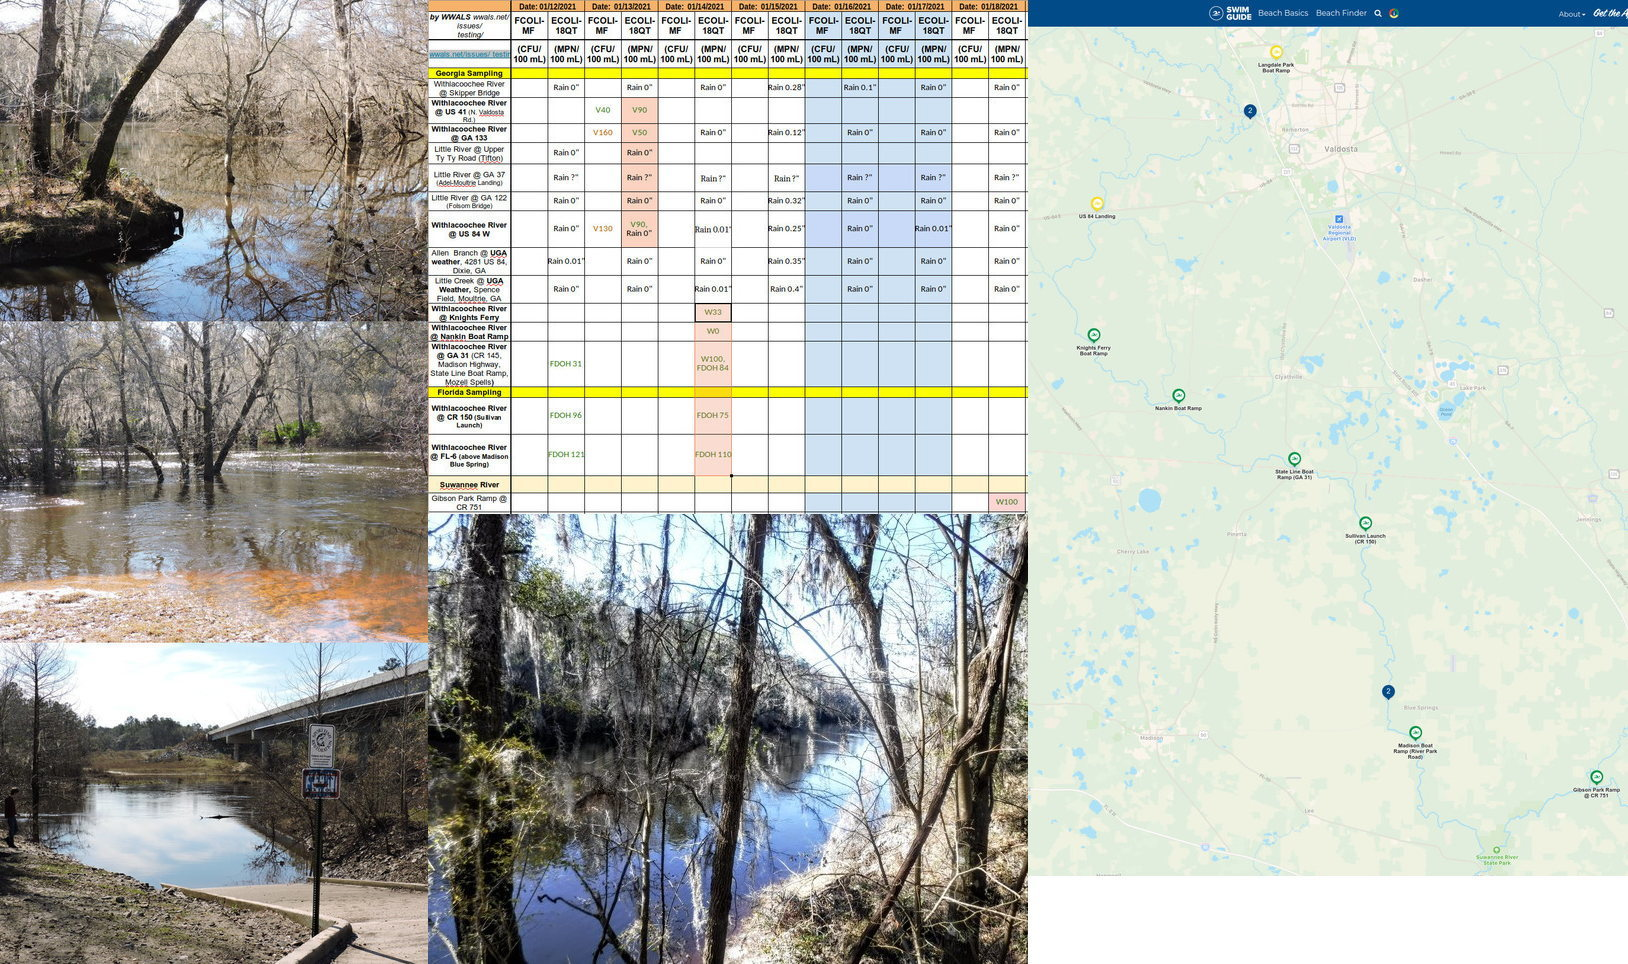 [Knights Ferry, Nankin, State Line, chart, Gibson Park, Swim Guide]